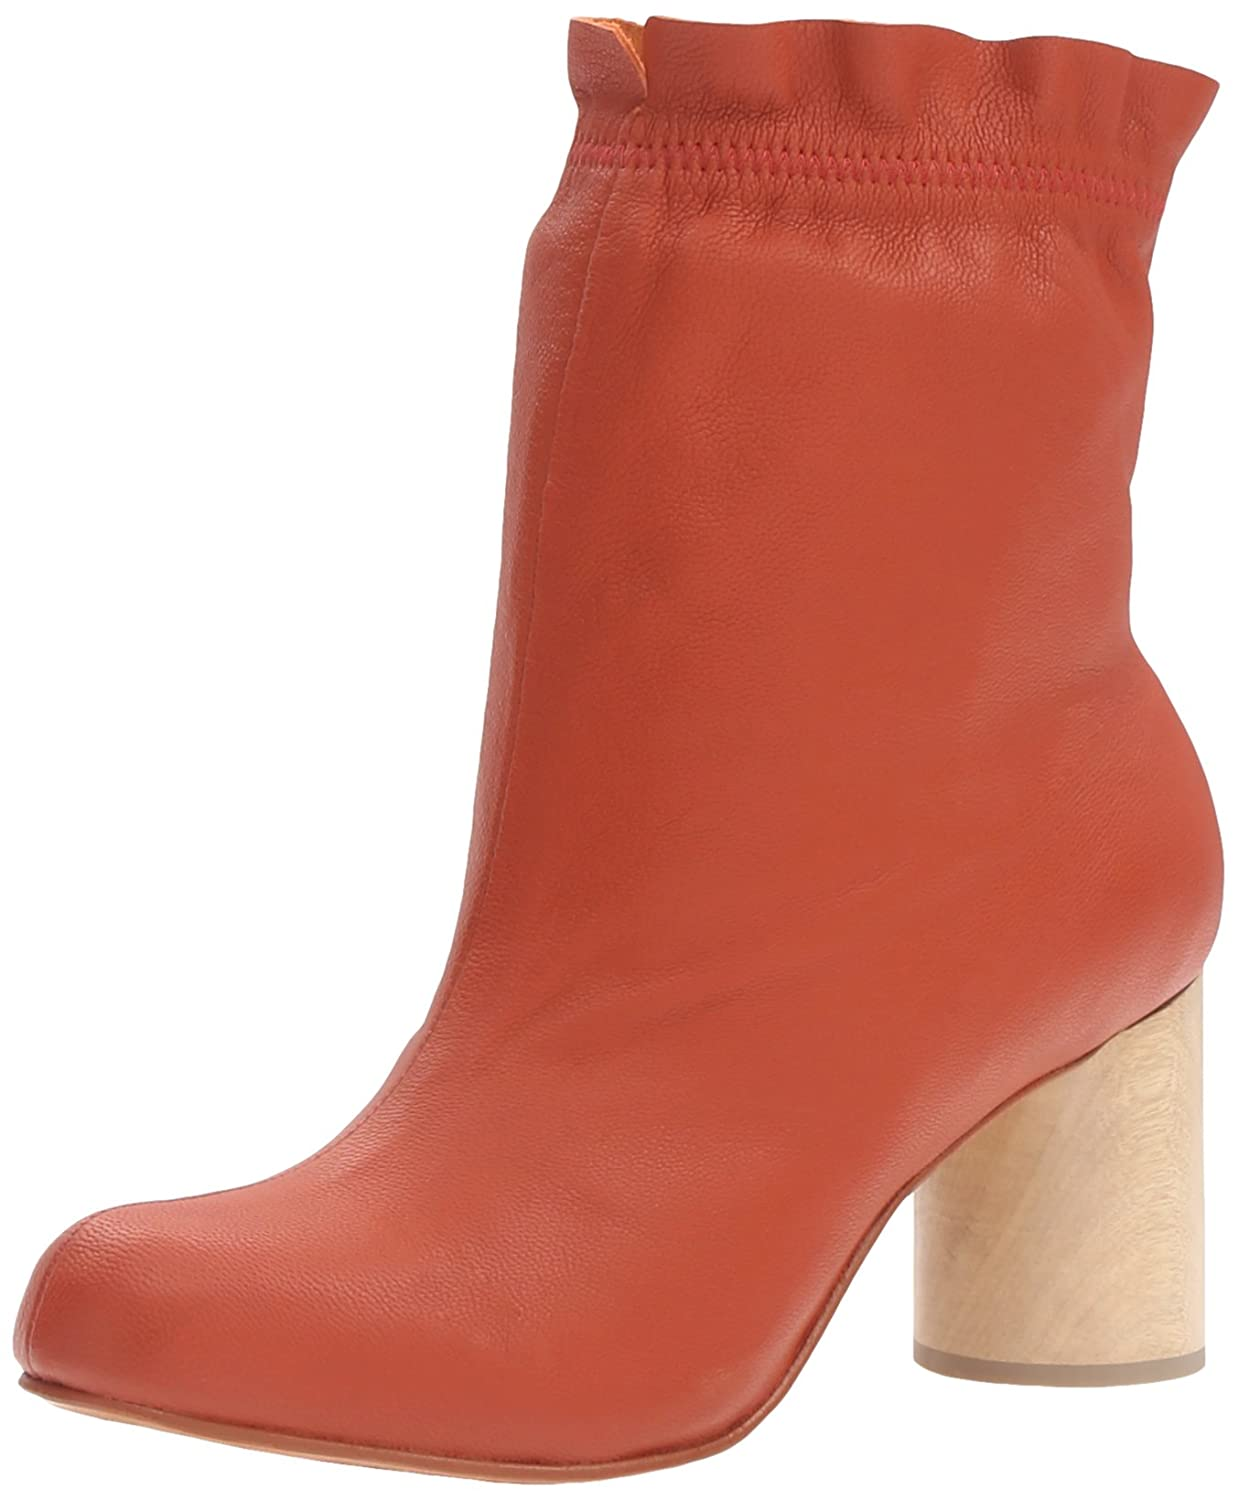 Rachel Comey Women's Willa Boot